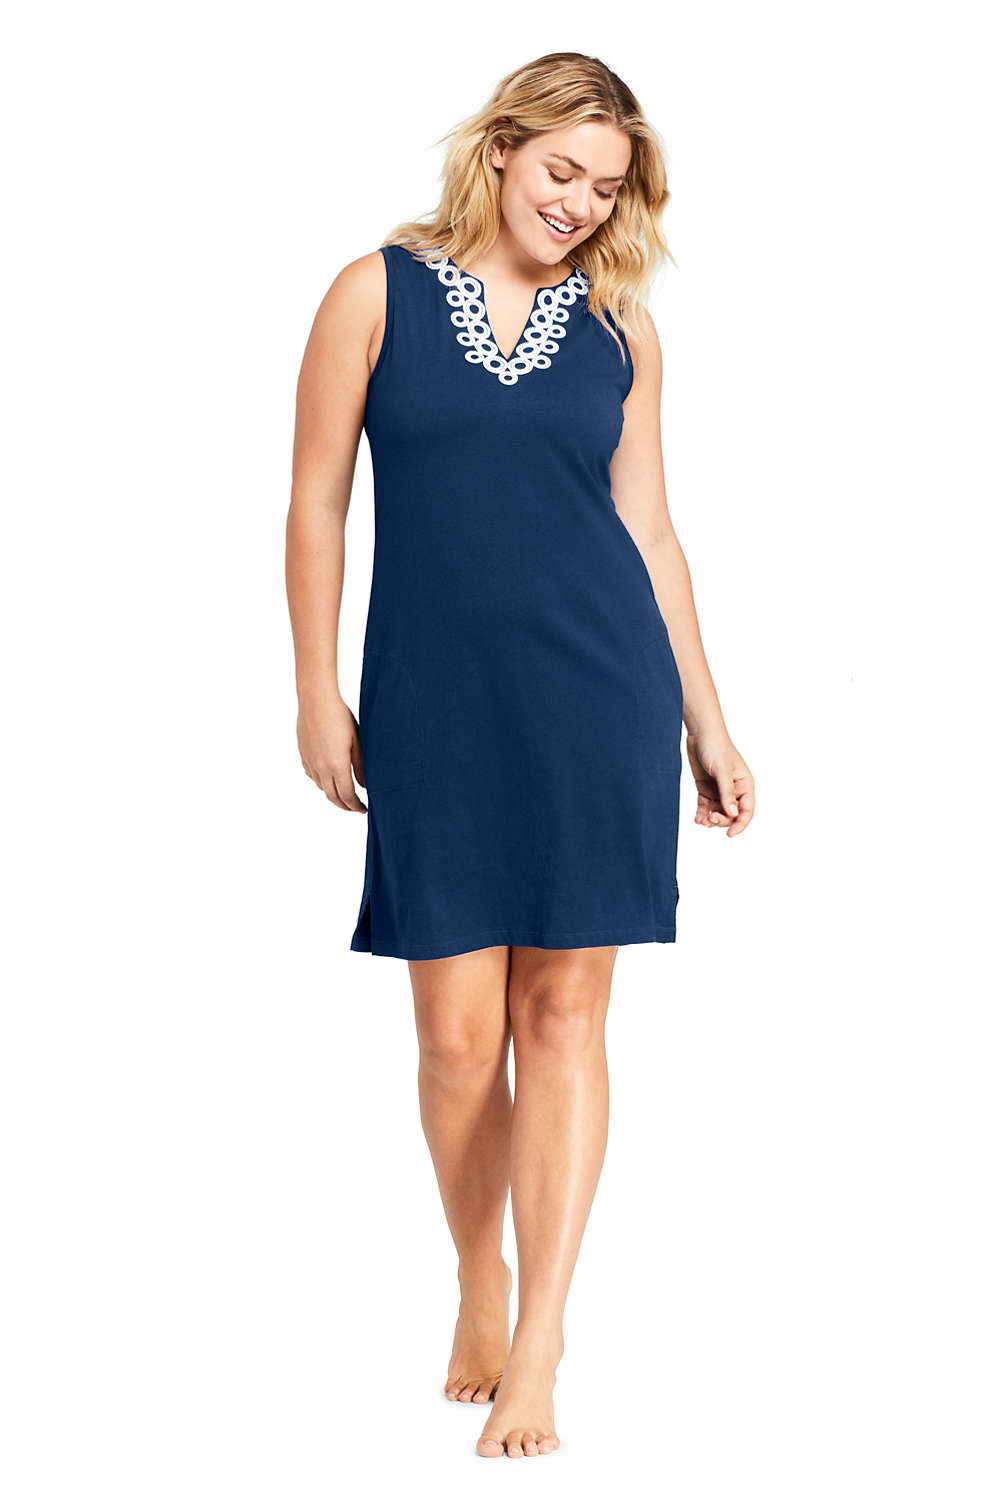 cbb22c7ce1 Women's Plus Size Cotton Jersey Embelished Sleeveless Tunic Dress Swim Cover -up from Lands' End